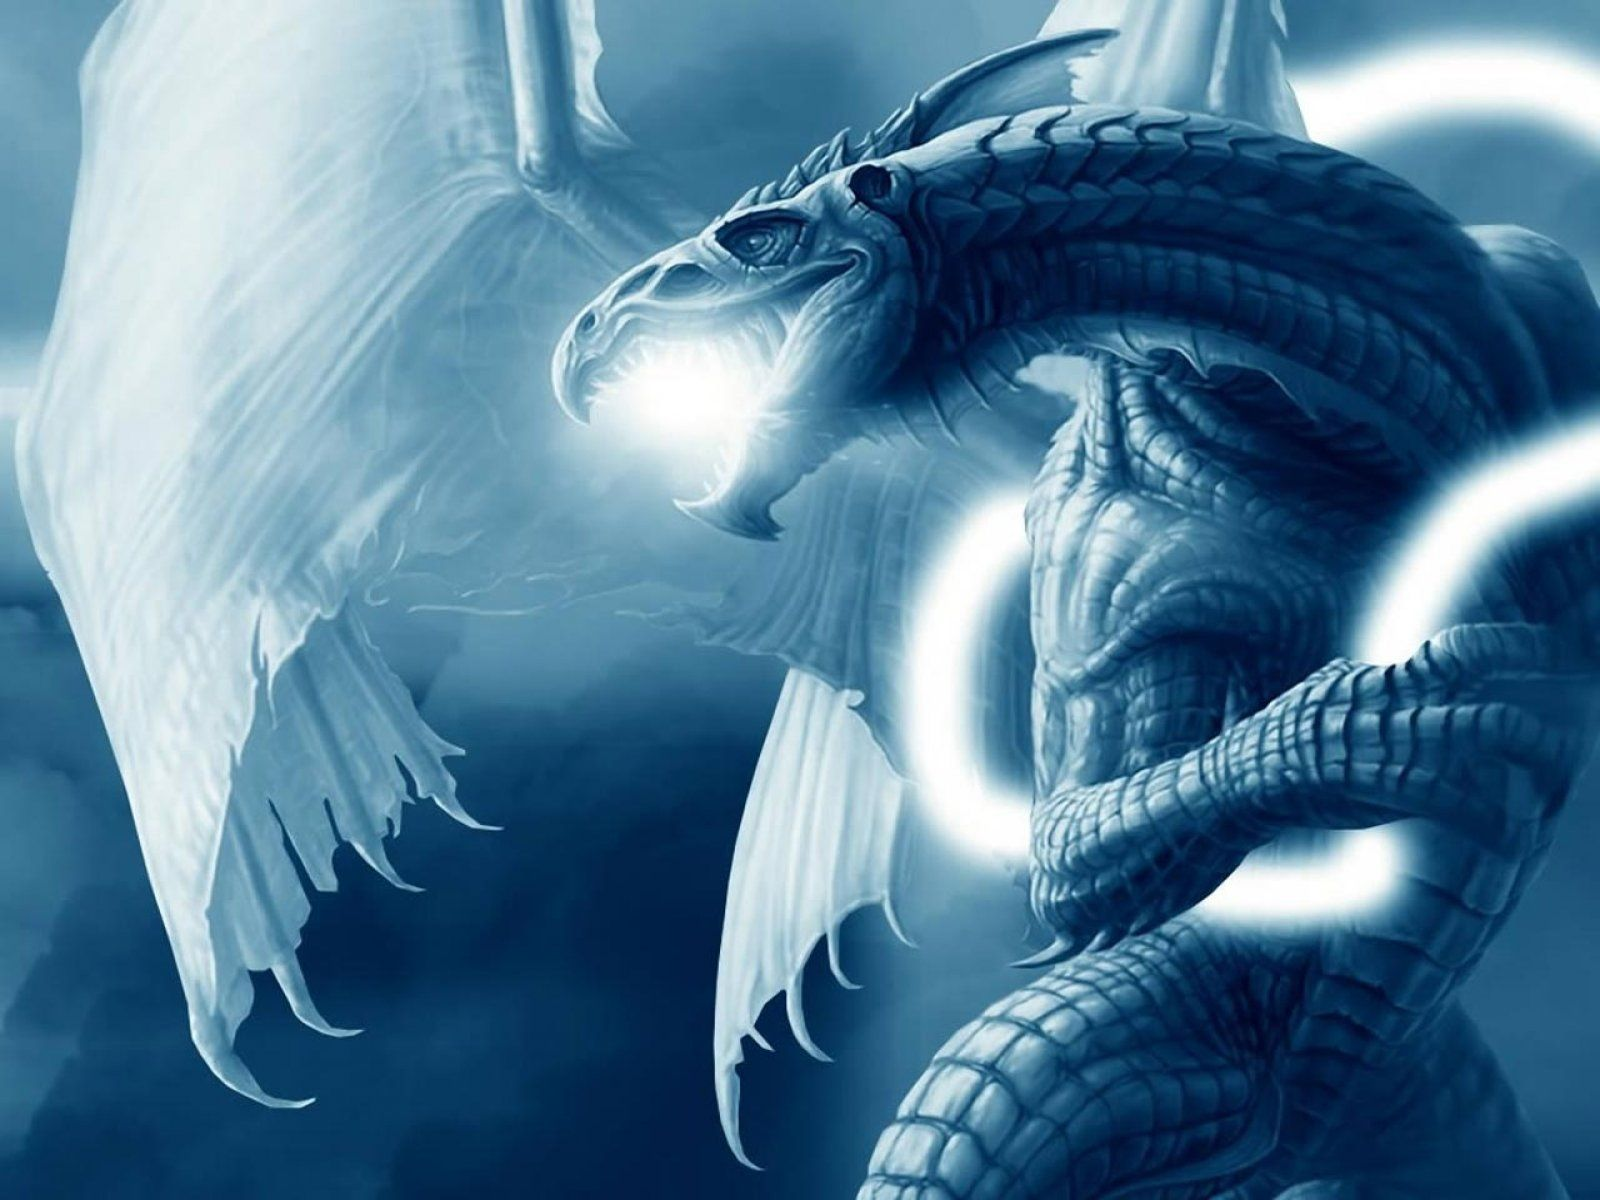 Blue Dragon Wallpapers Top Free Blue Dragon Backgrounds